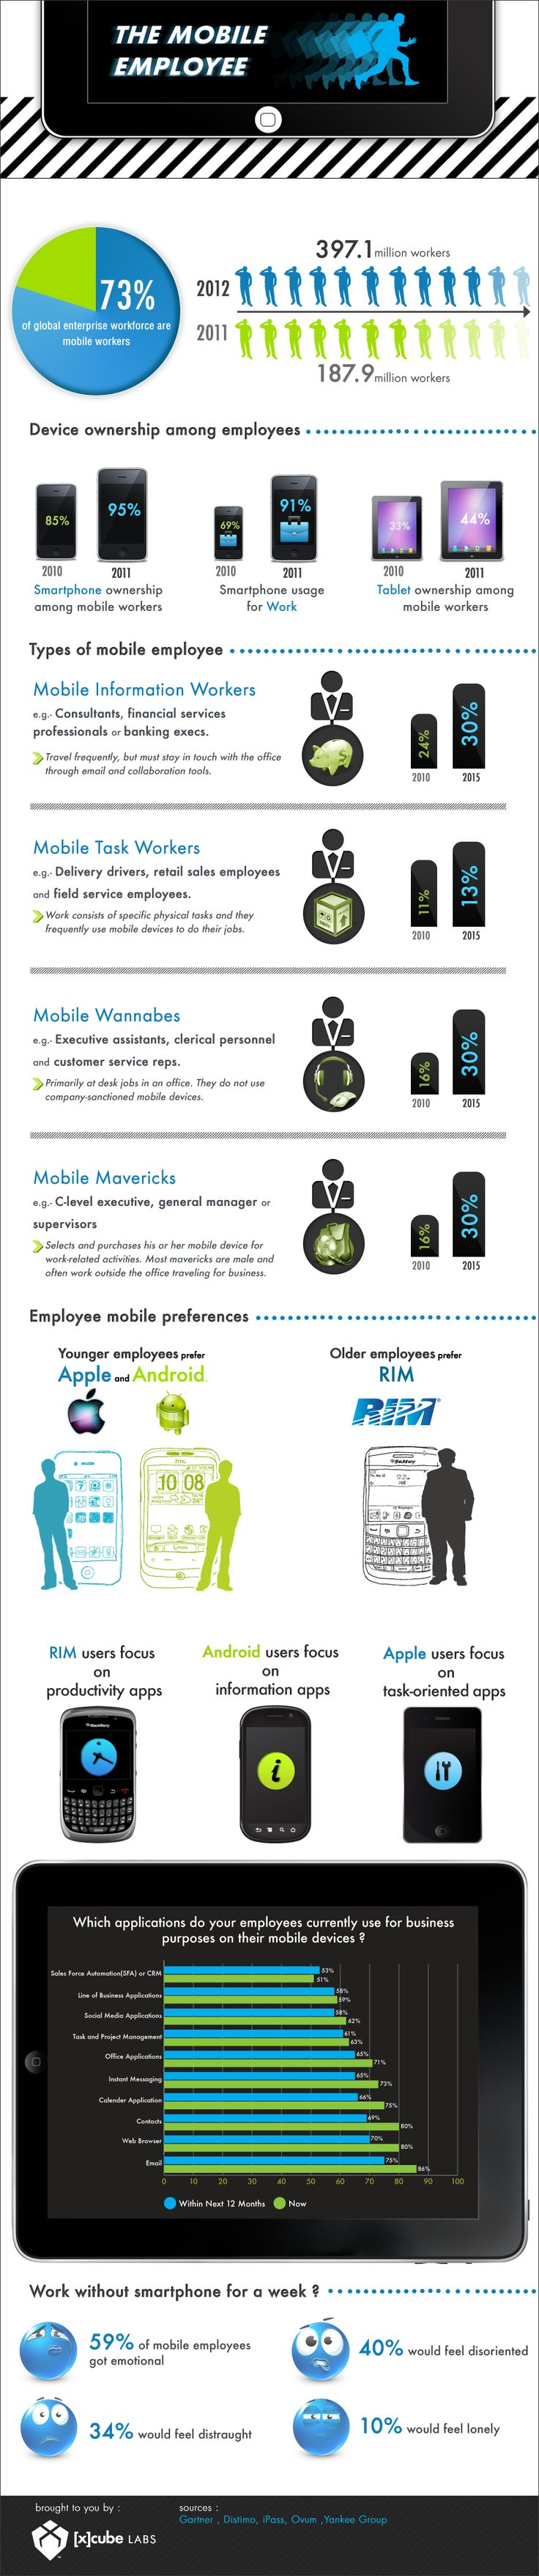 Do you know that there will be 397.1 million mobile workers by the end of 2012? Clearly, the era of 9-to-5 work-culture is passé. Today we have a gro